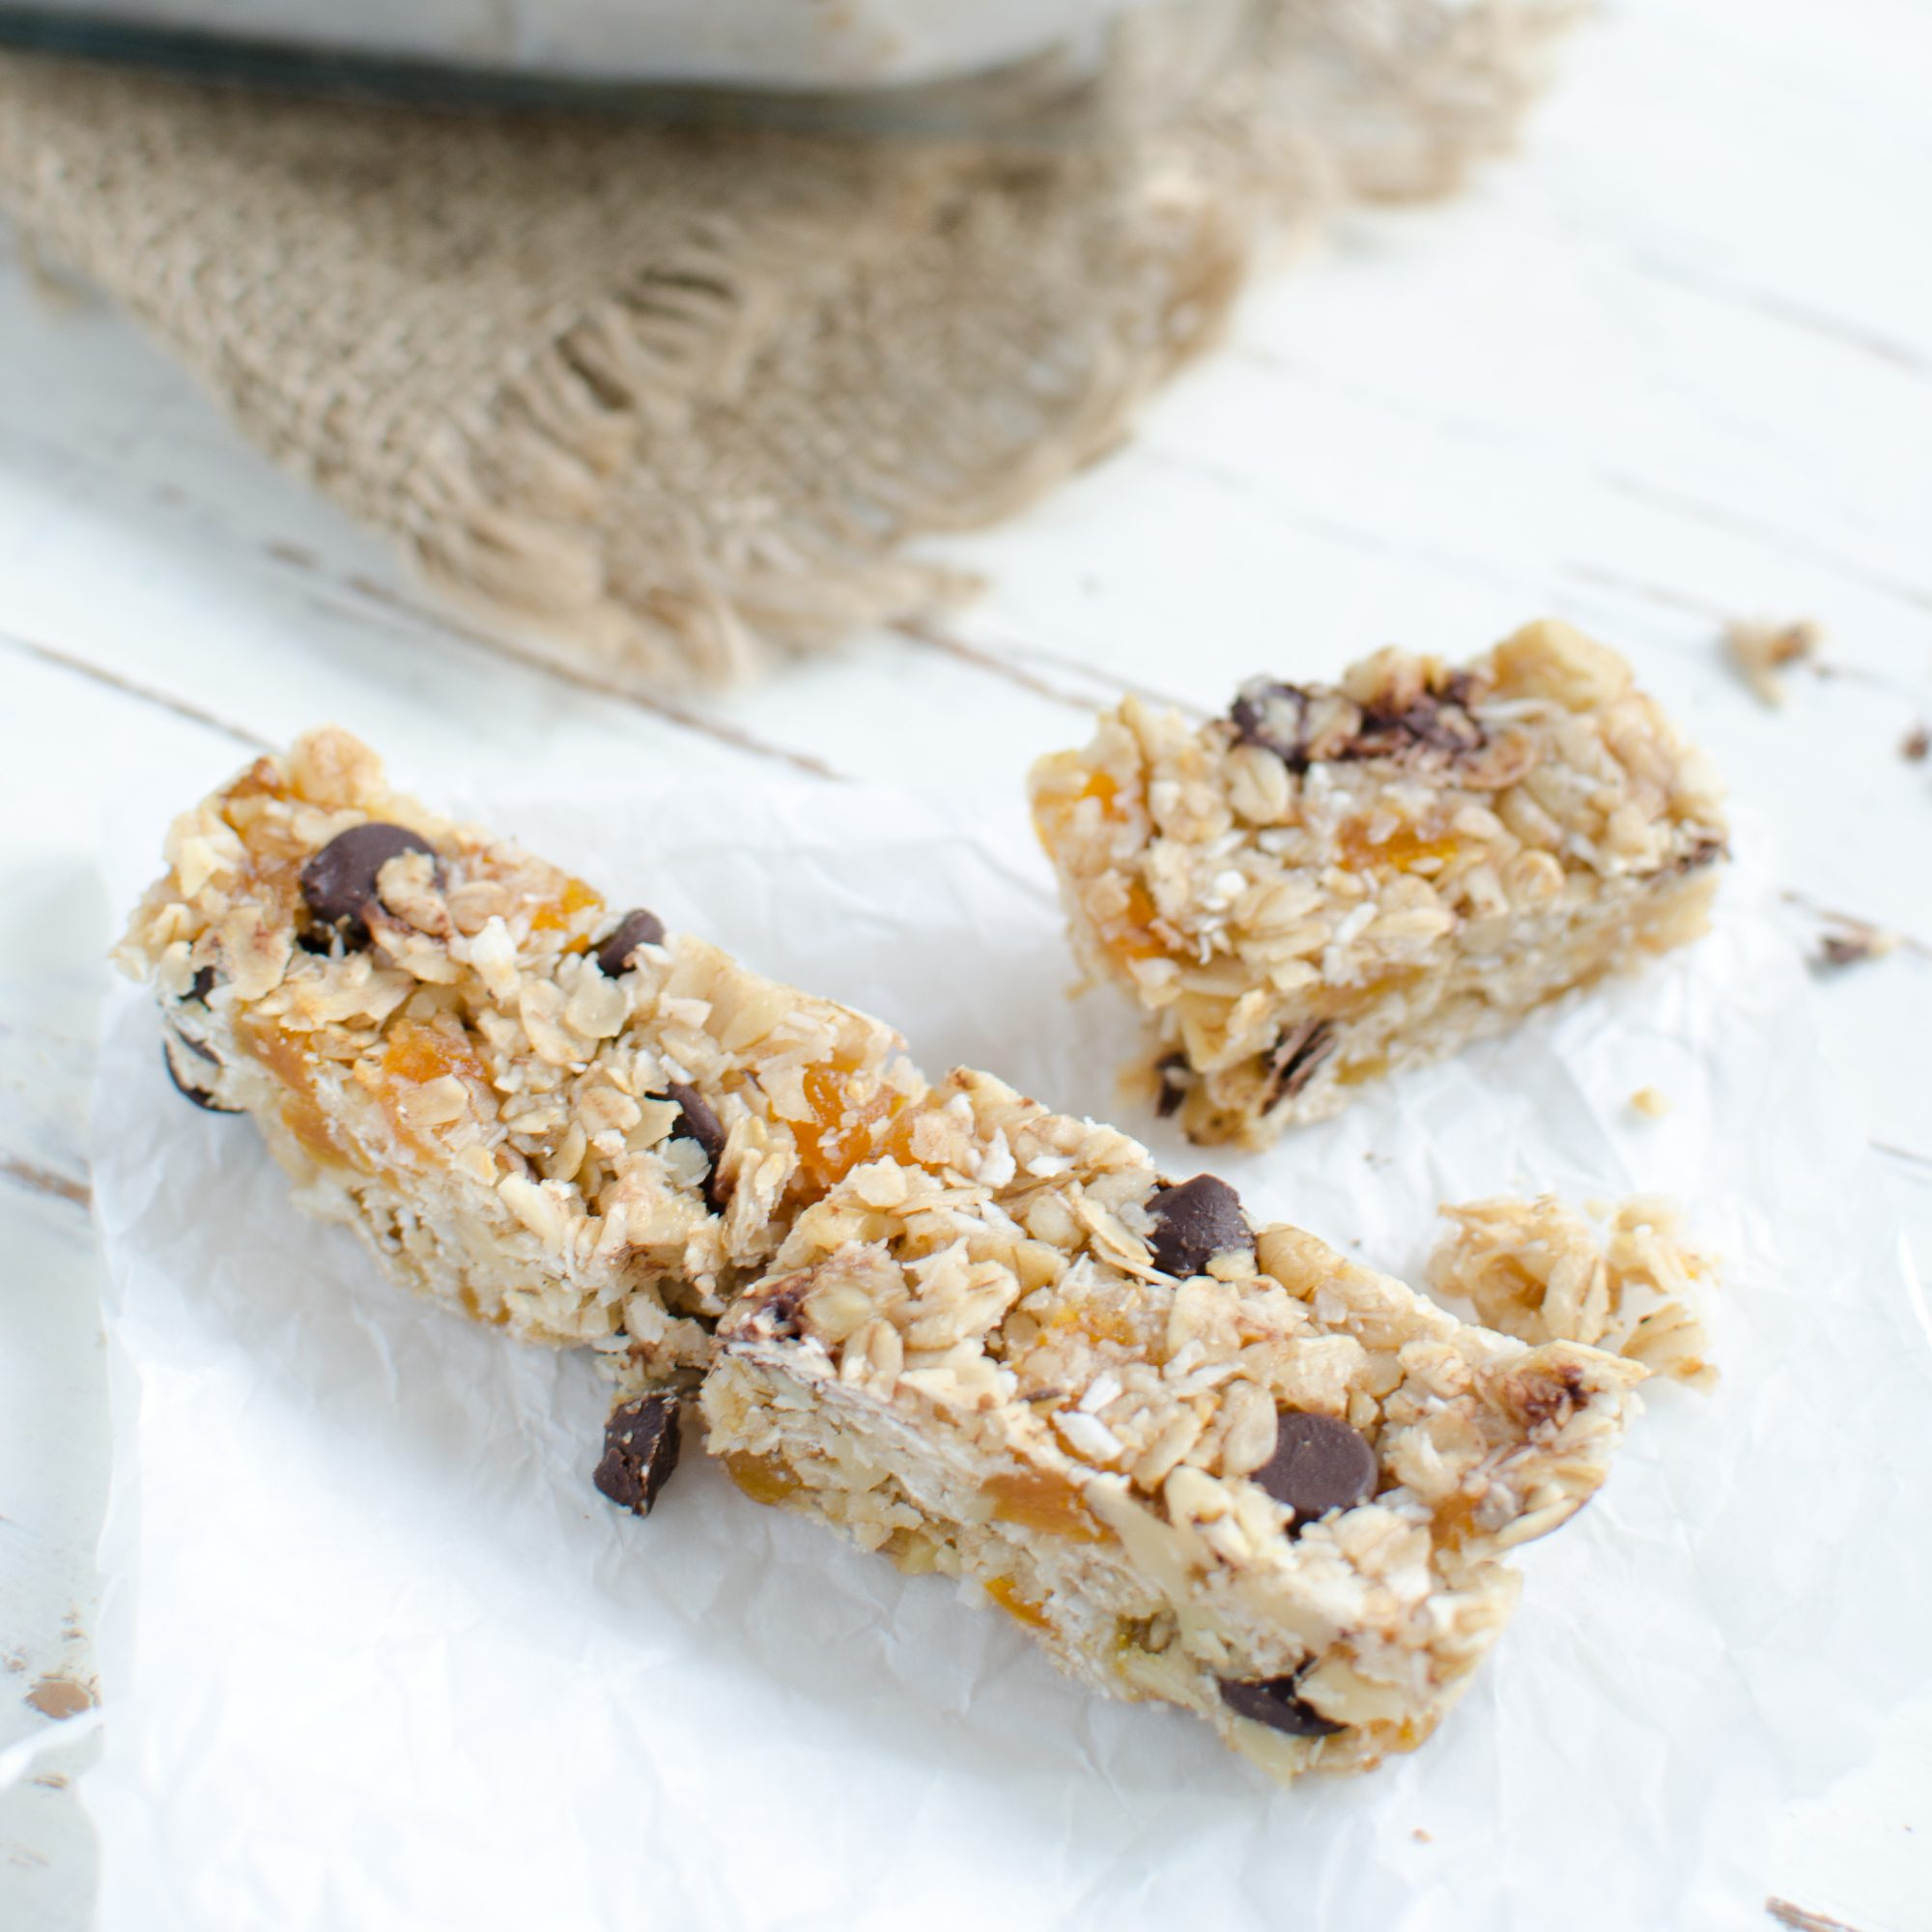 201404-r-coconut-flour-granola-bars-with-walnuts-and-dried-apricots.jpg